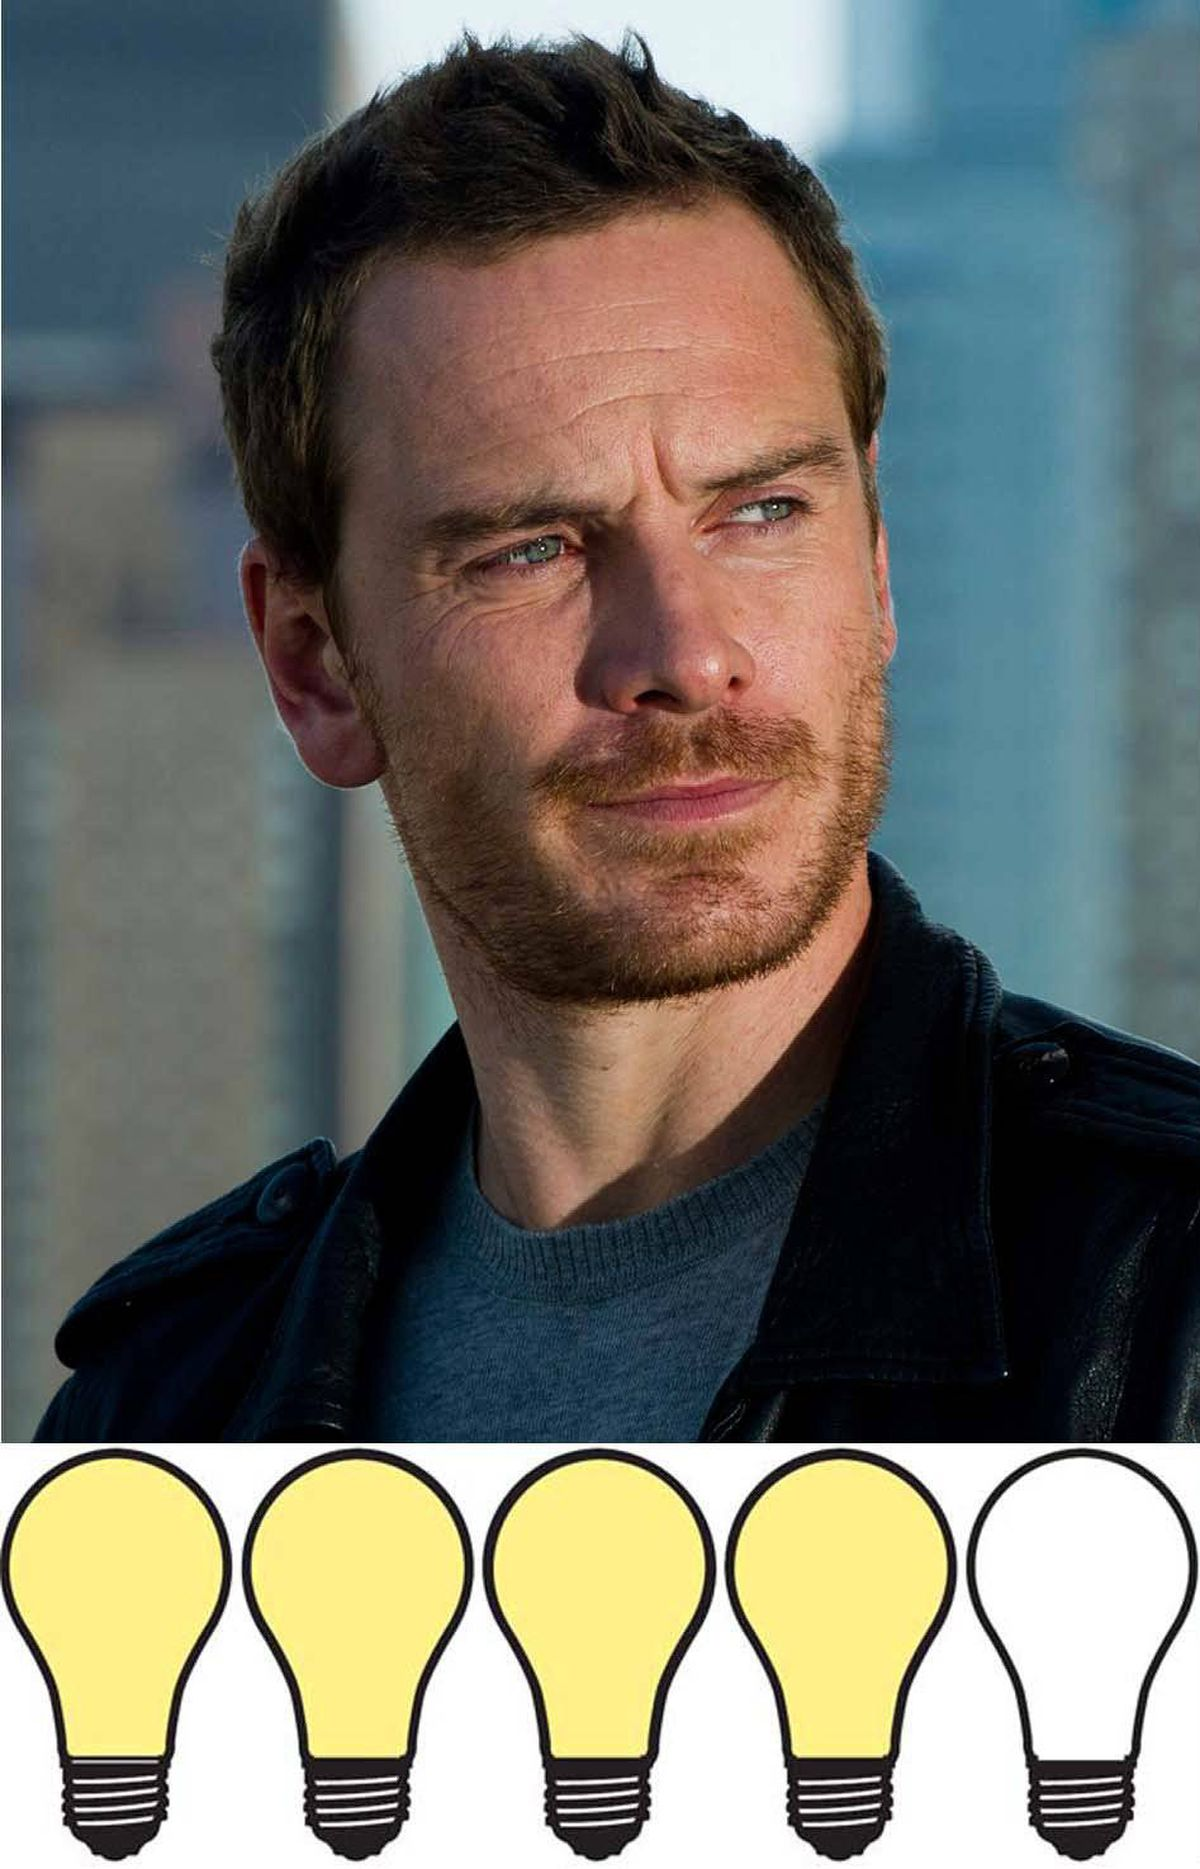 "BREAKOUT STAR: MICHAEL FASSBENDER 80 WATTS The world was introduced to the new Big Important Actor this year. His name is Michael Fassbender. Armie Hammer and Alexander Skarsgard may have been in the race for the title of ""breakout star,"" but they were both a far second compared to Fassbender. The 34-year-old Irish-German actor went from success to success, whether it was big budget summer movies (X-Men: First Class), moody period pieces (Jane Eyre) or art-house films (A Dangerous Method, Shame)."